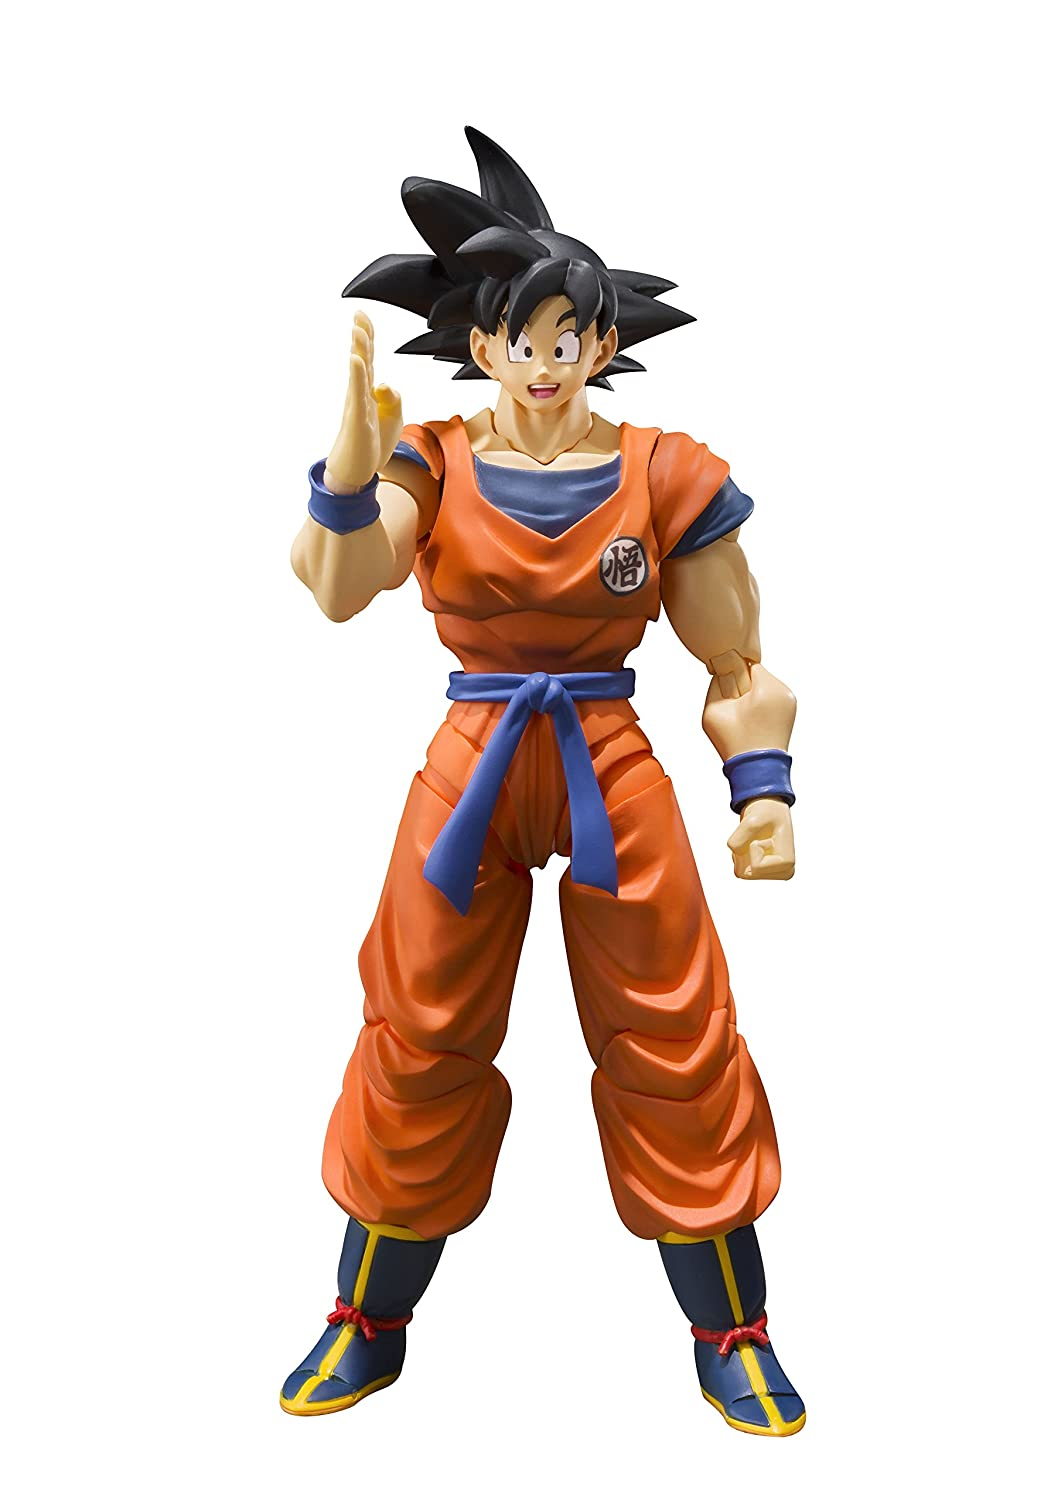 Bandai Tamashii Nations S.H. Figuarts Son Goku (A Saiyan Raised on Earth) 'Dragon Ball Super' Action Figure